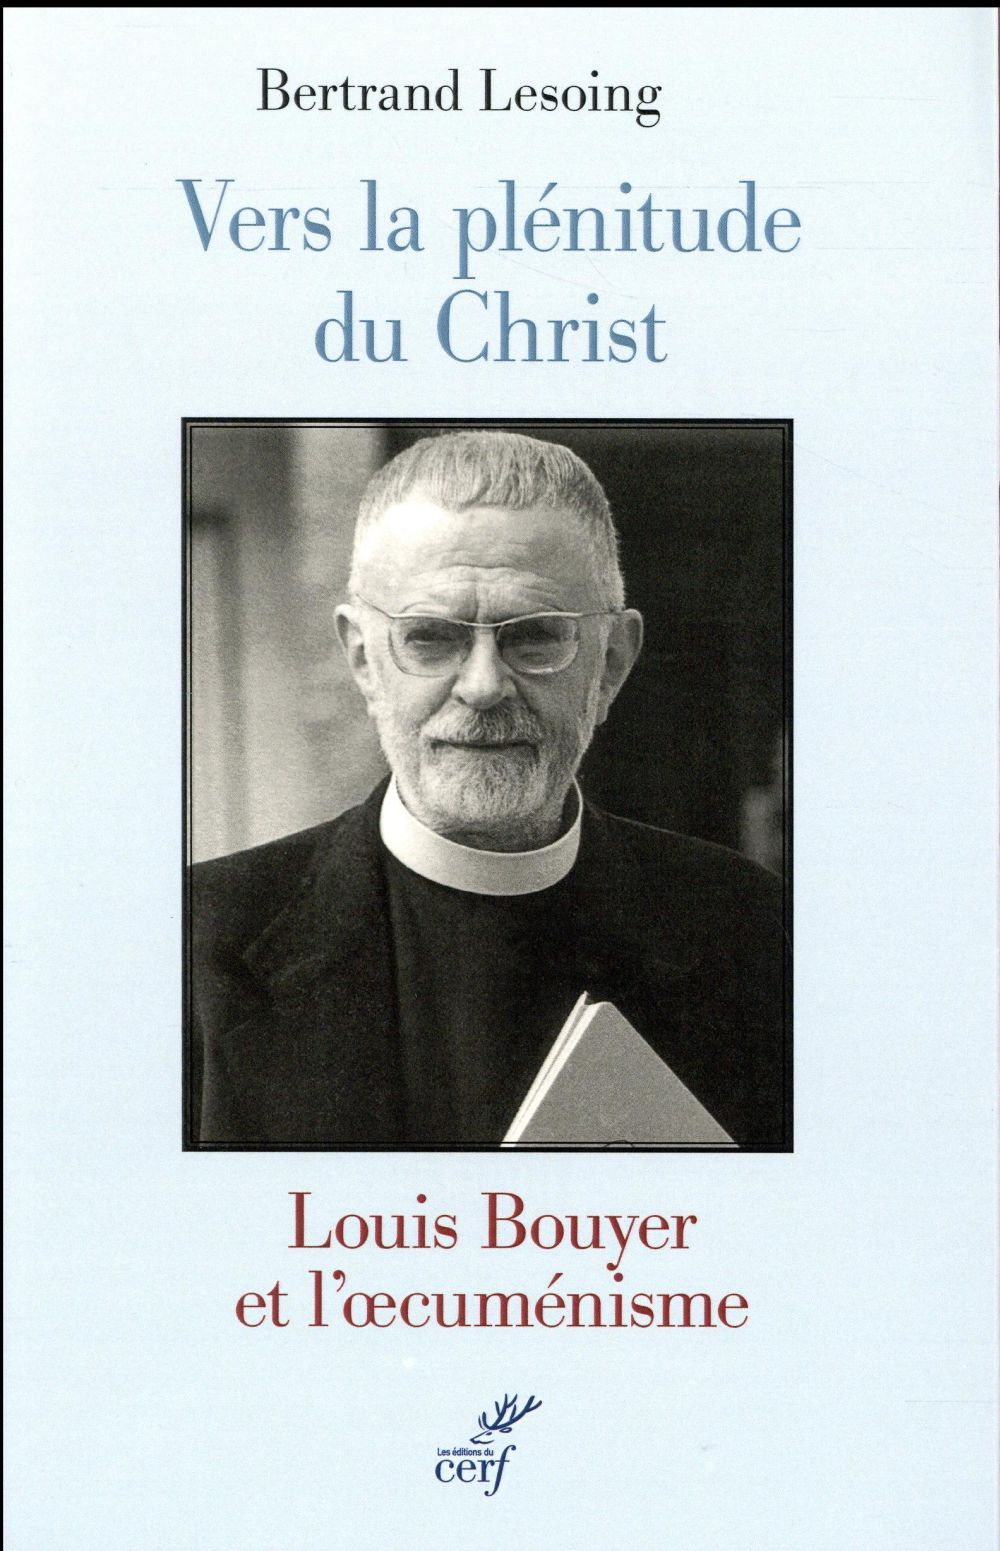 VERS LA PLENITUDE DU CHRIST - LOUIS BOUYER ET L'OECUMENISME